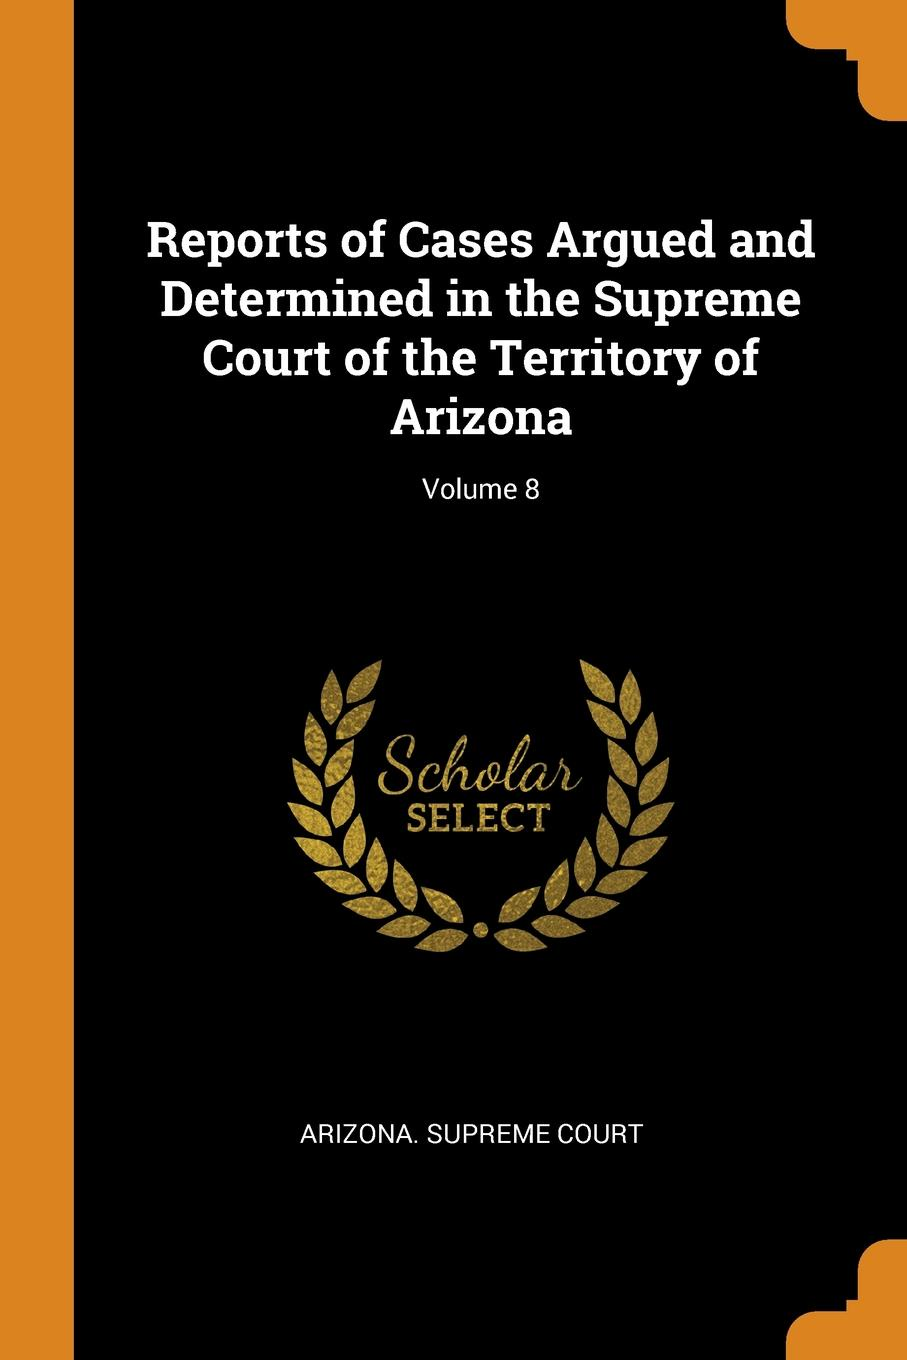 Reports of Cases Argued and Determined in the Supreme Court of the Territory of Arizona; Volume 8